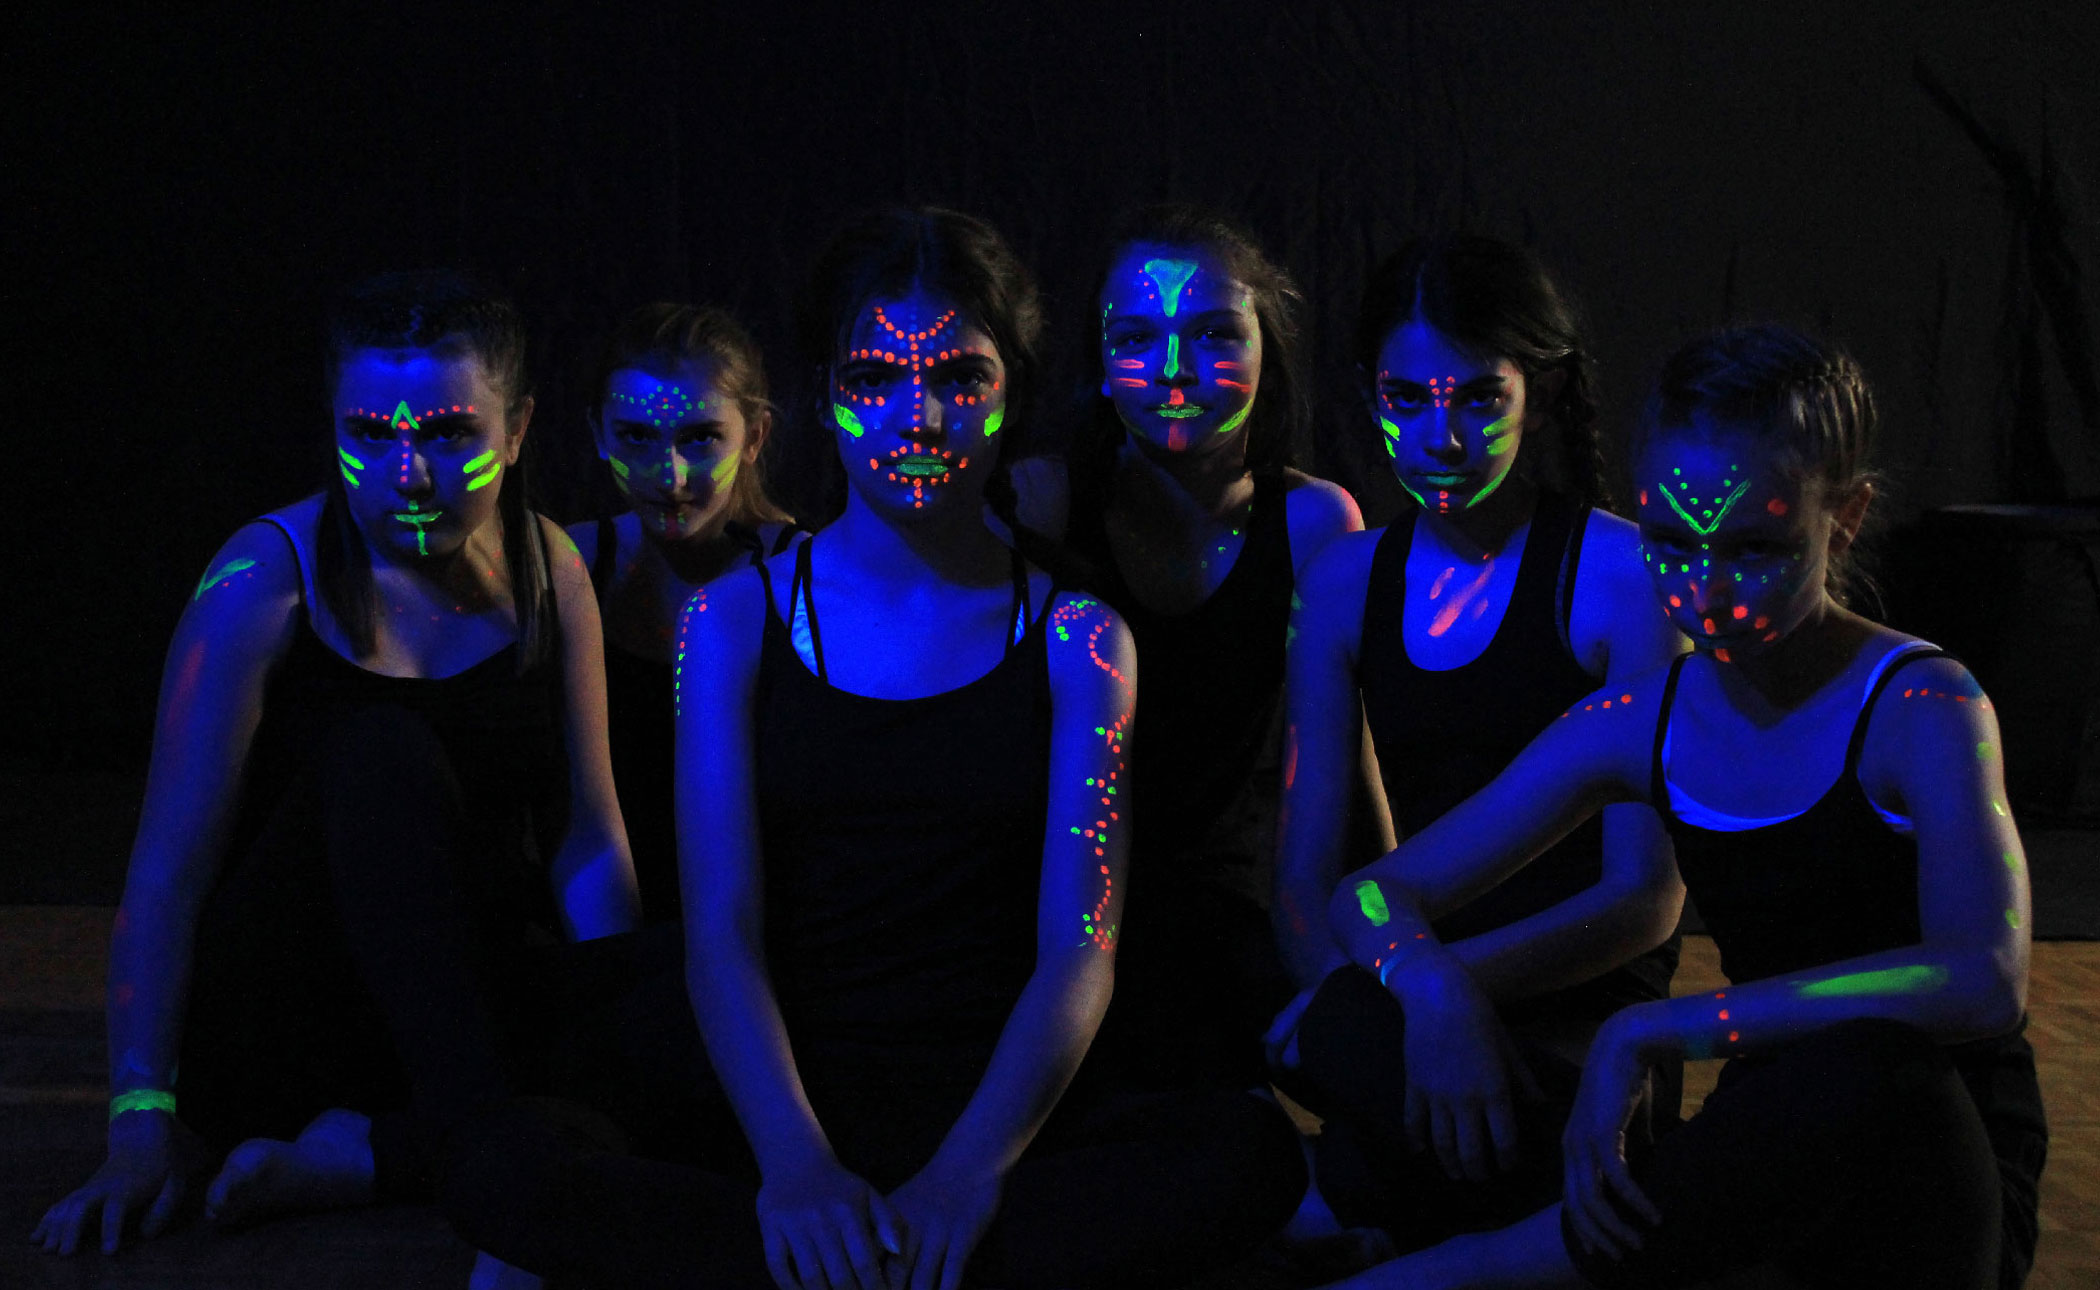 tournage enfants glowing body paint